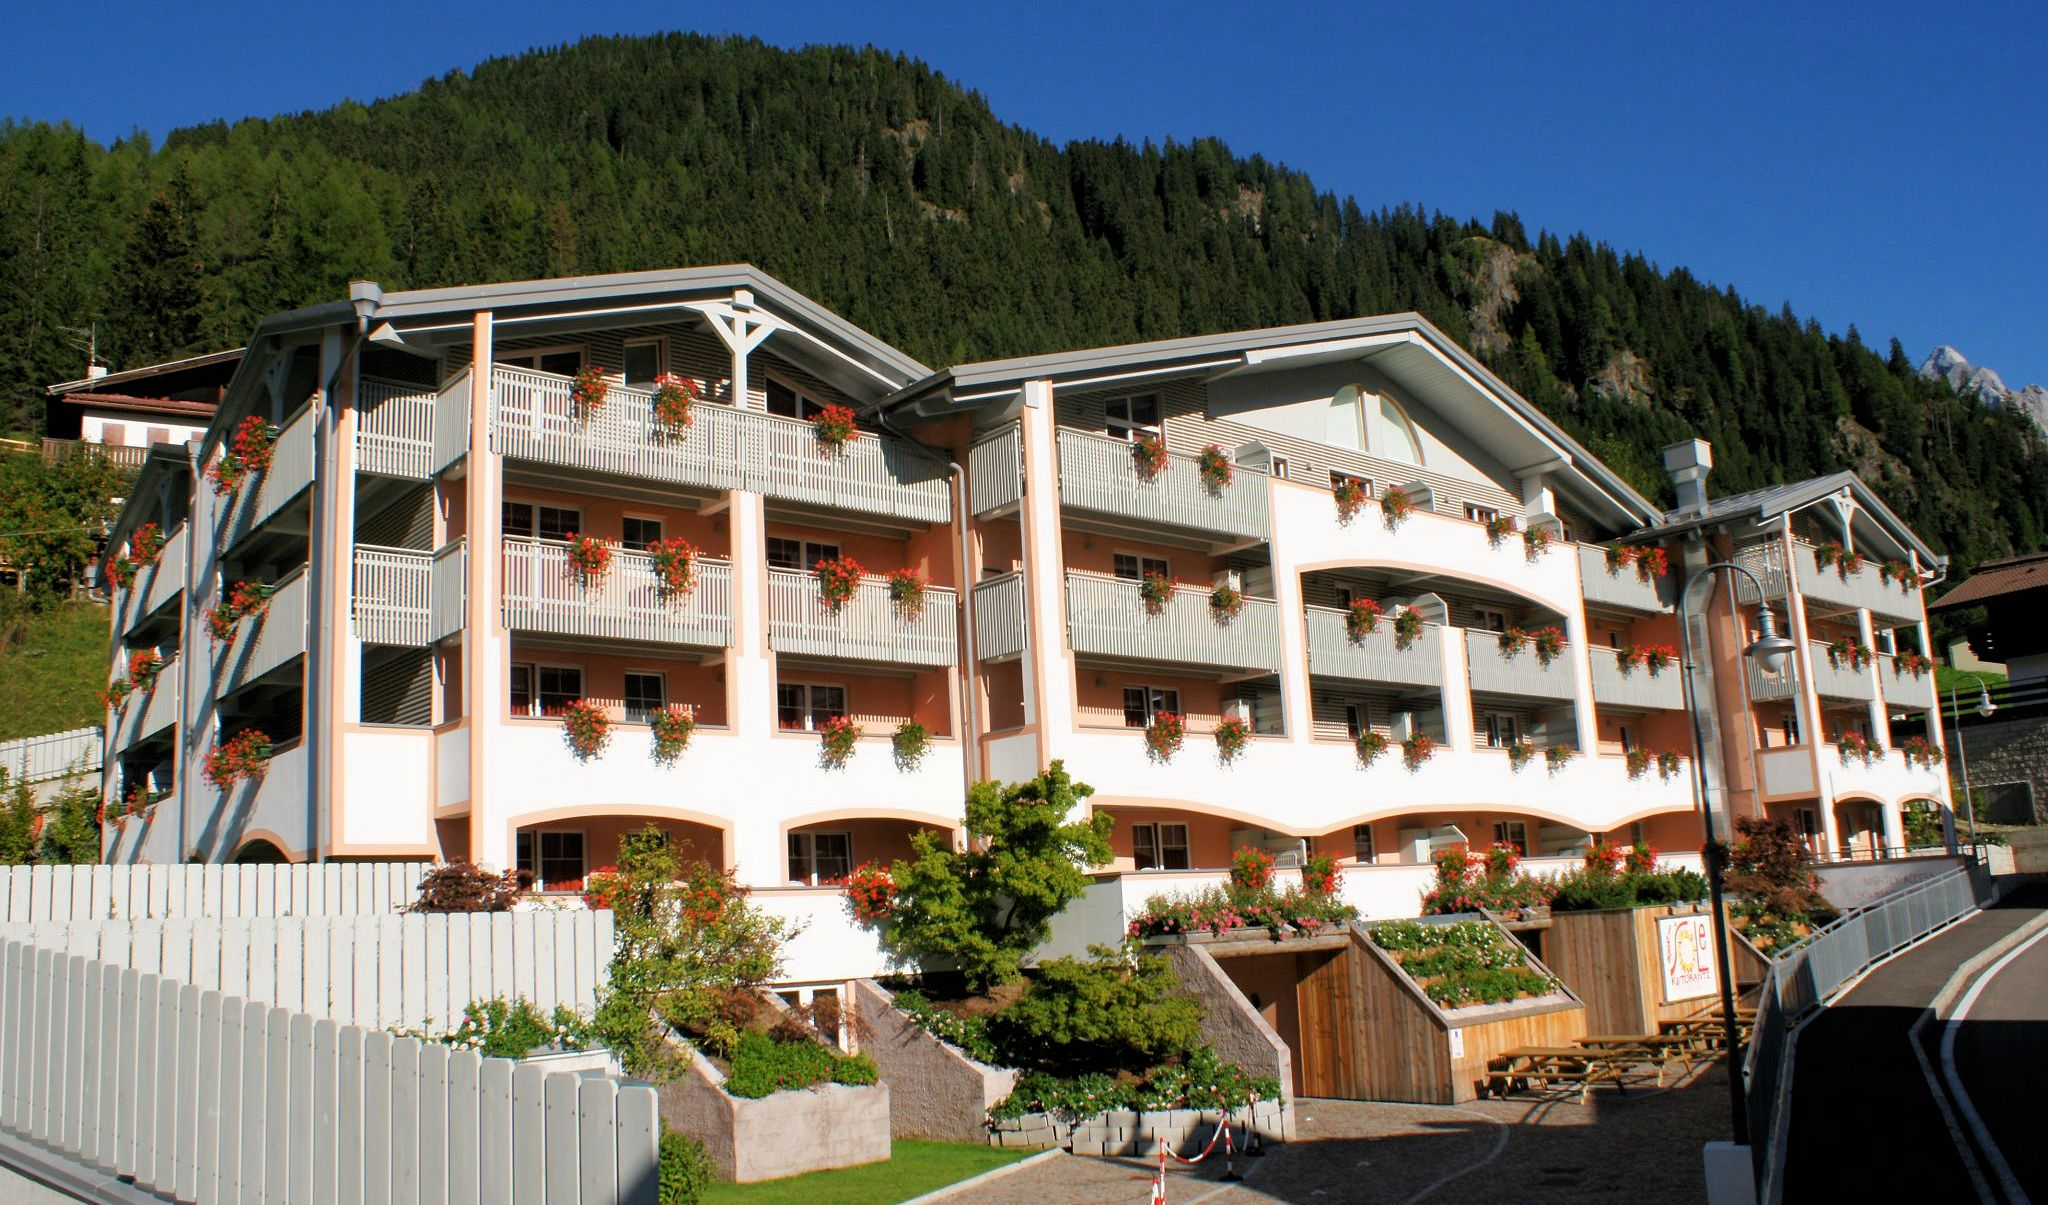 Hotel Il Caminetto Resort Canazei Holiday Apartments Clubresidence Al Sole Canazei Tyrol